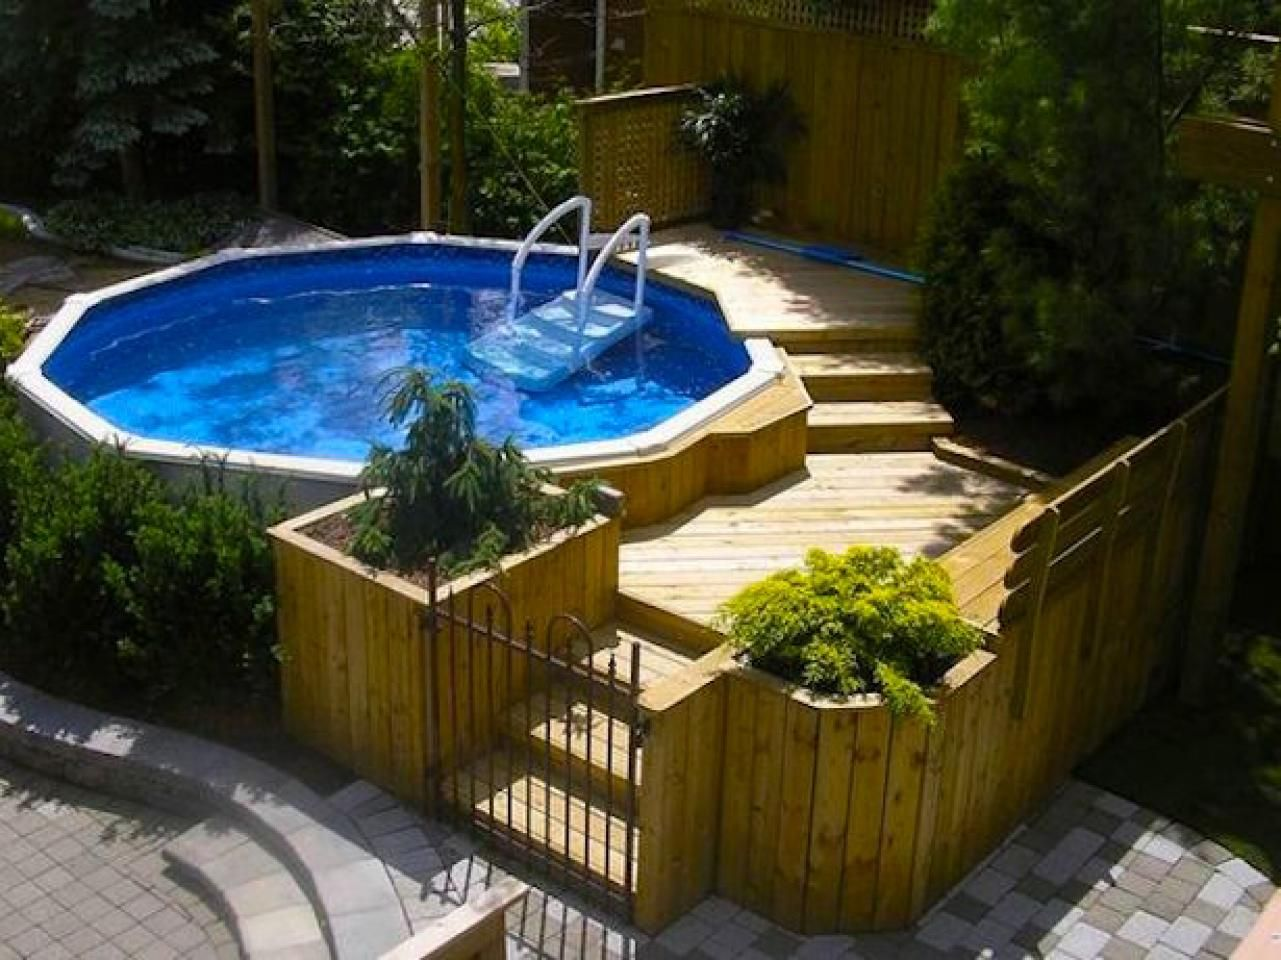 58 Cute Little Swimming Pools Ideas Swimming Pools In Ground Pools Backyard Pool - Intex Pool Eingraben